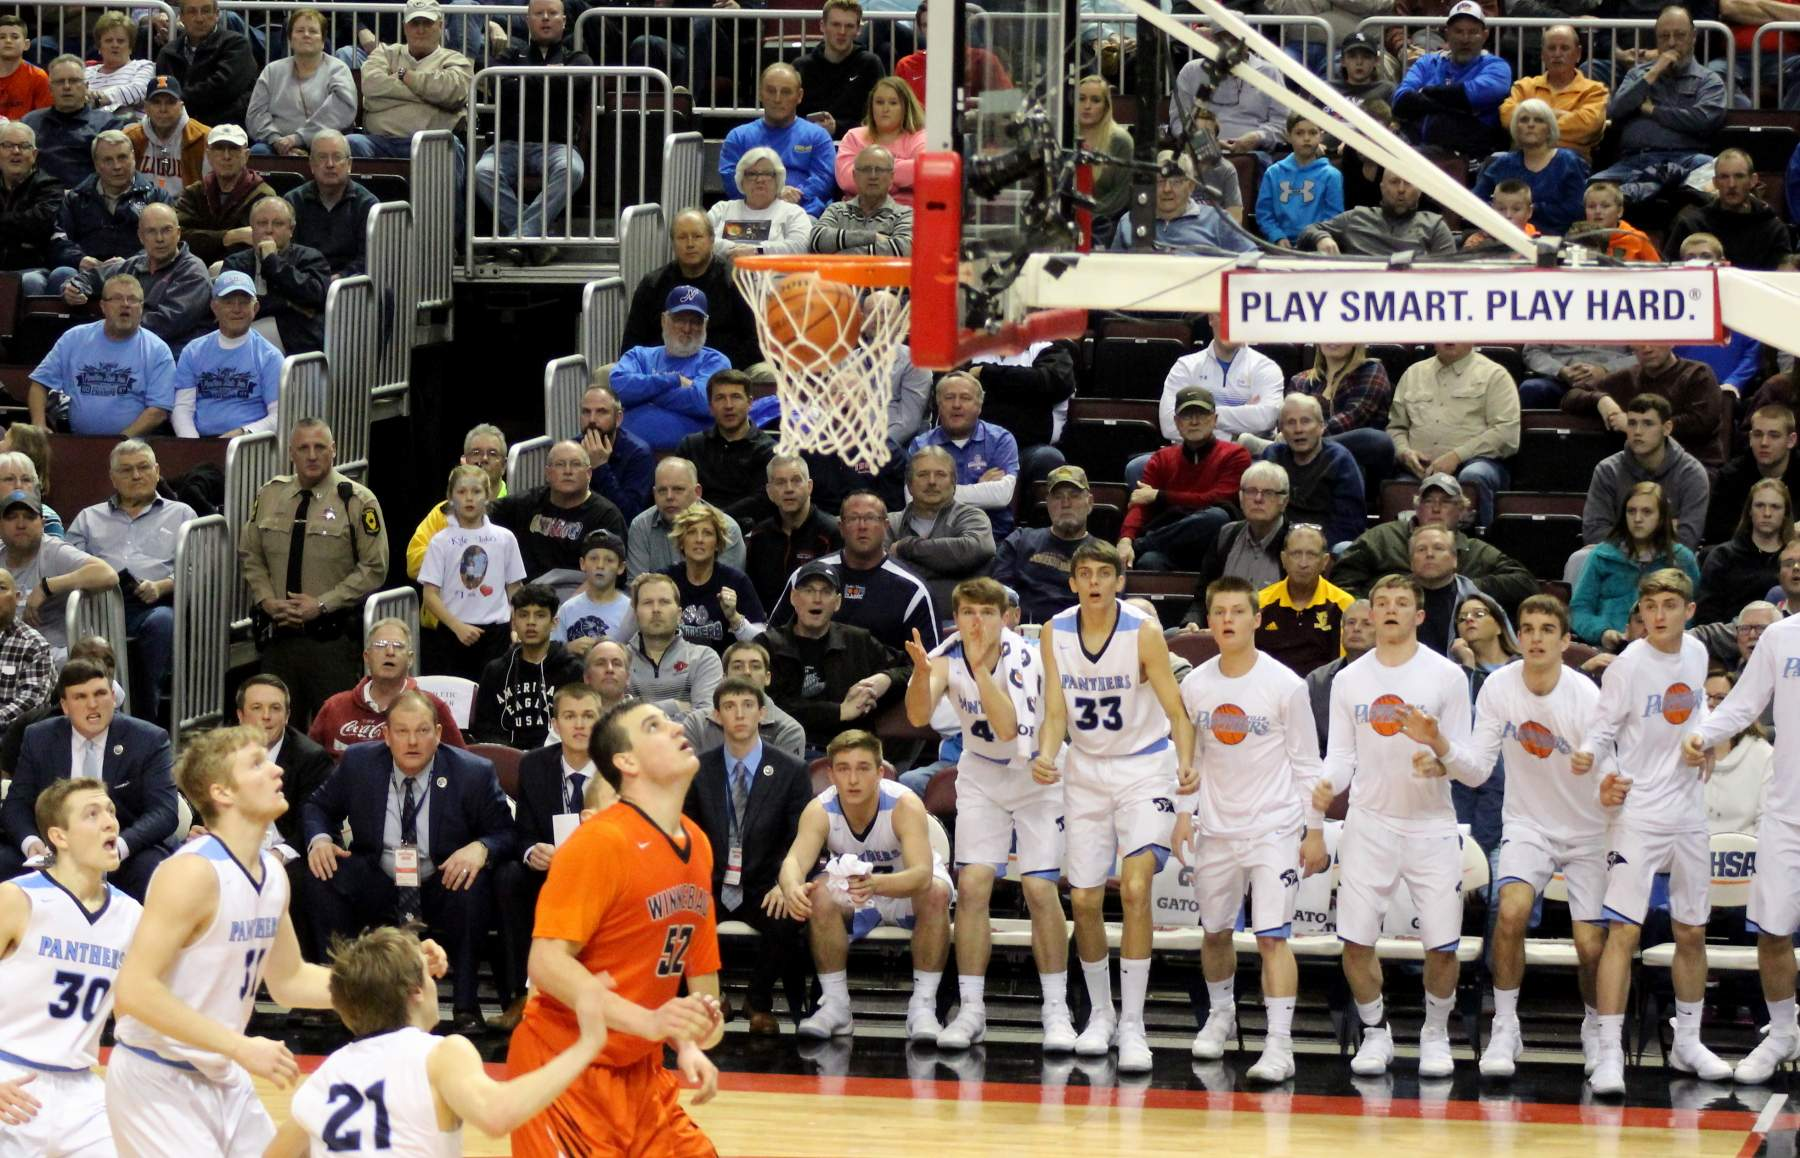 Dawson Yates' (not pictured) shot goes in as the coaches and players react.